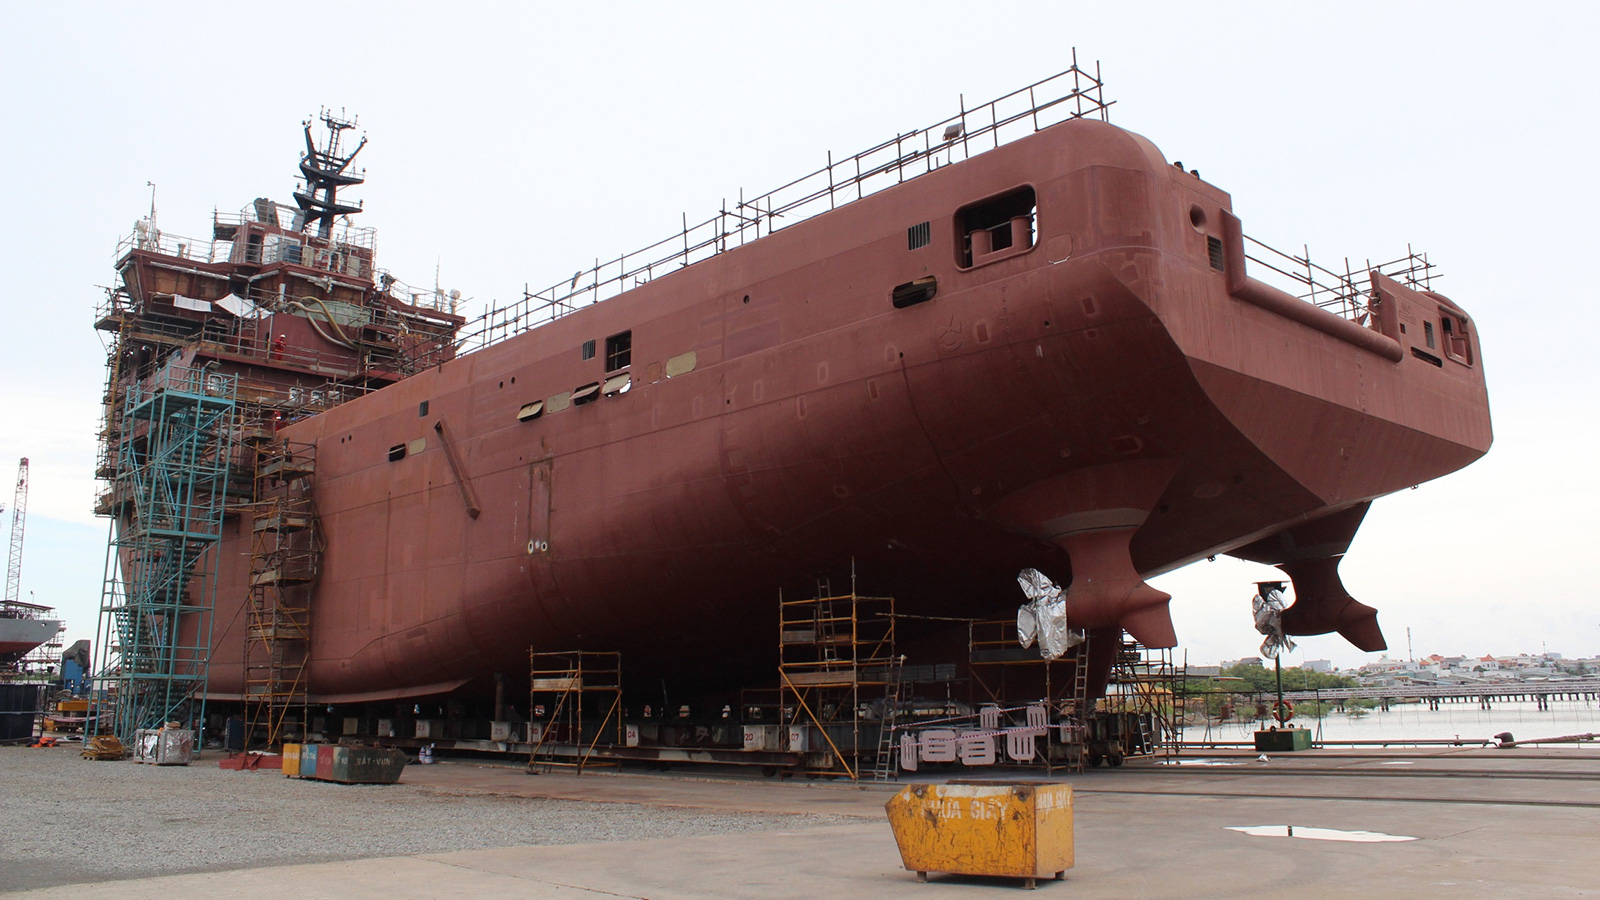 82-metre-in-build-explorer-yacht-kilkea-at-the-vard-shipard-in-vietnam